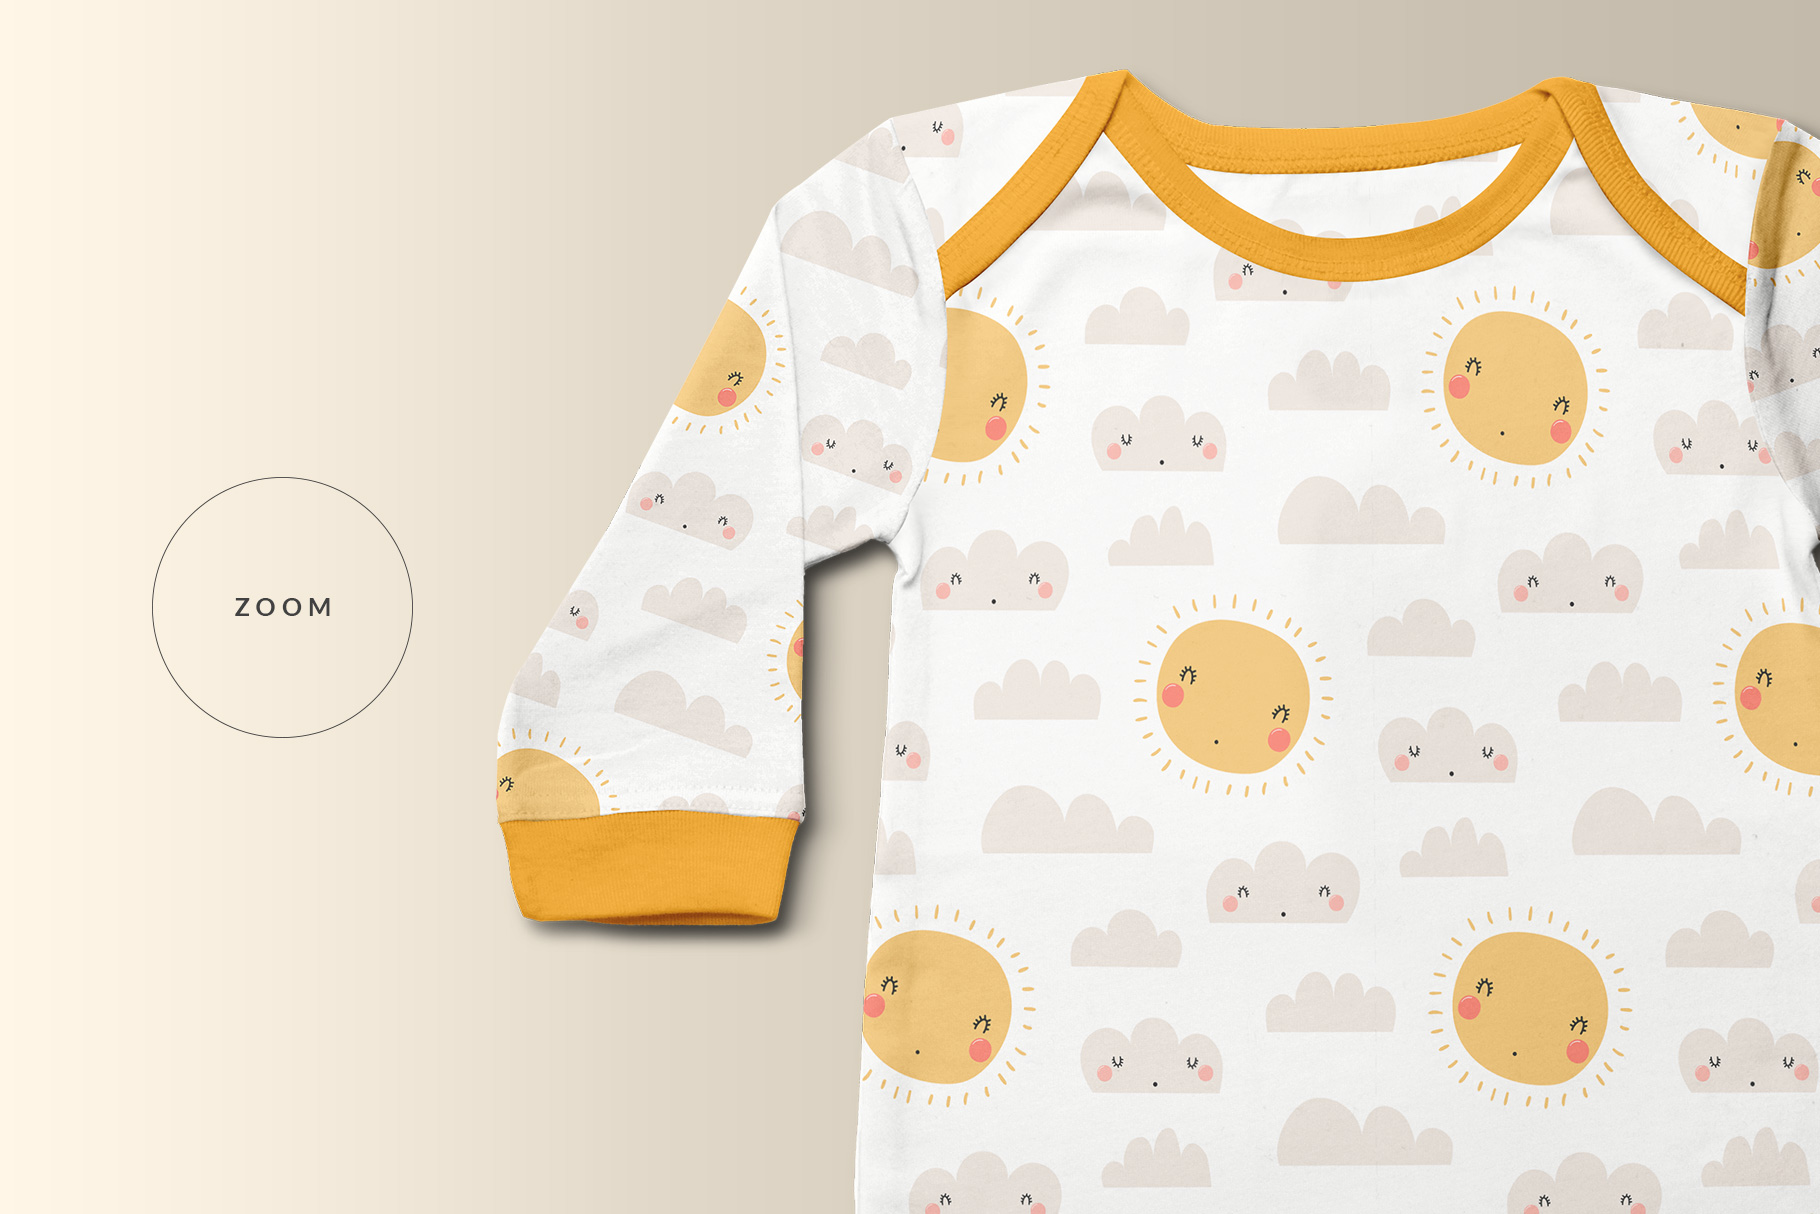 zoomed in image of the top view kids quarter sleeve romper mockup